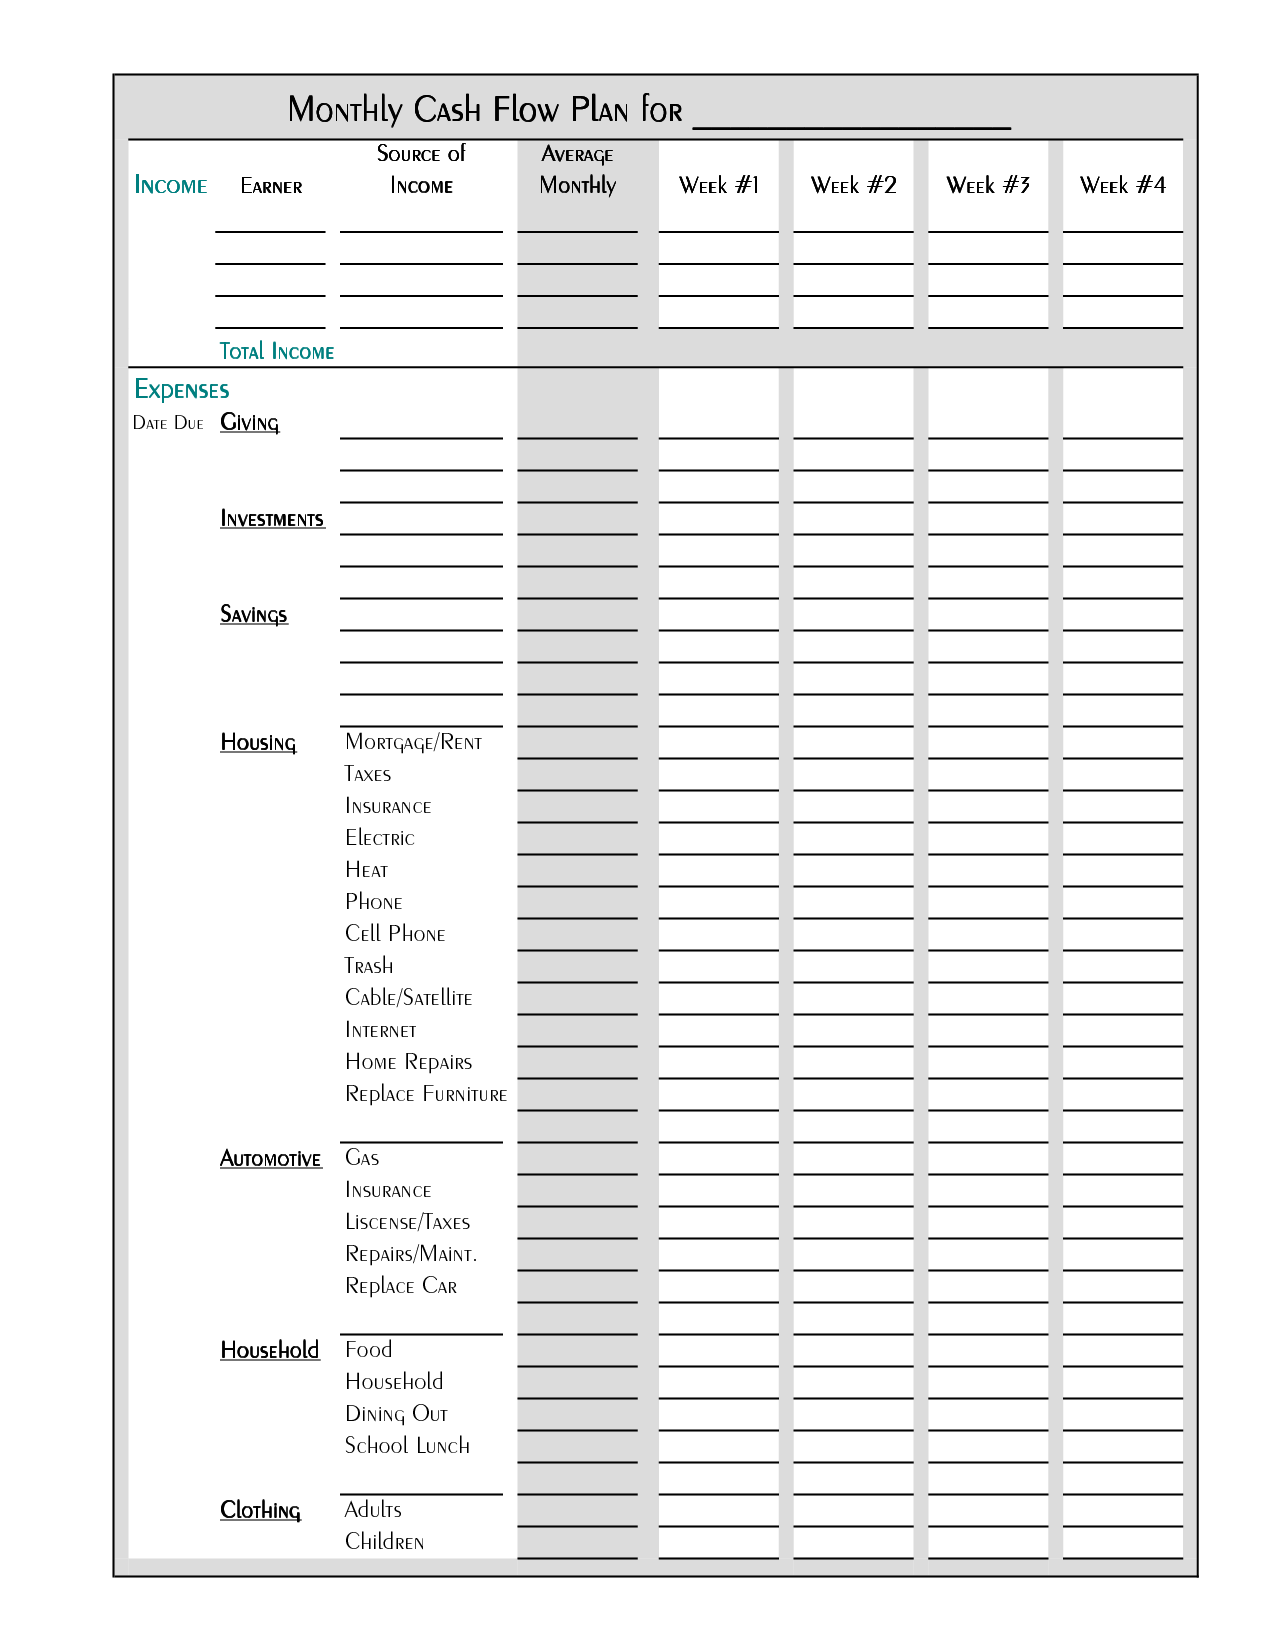 Keeping A Budget Worksheet and Free Printable Bud Worksheet Template Tips Ideas